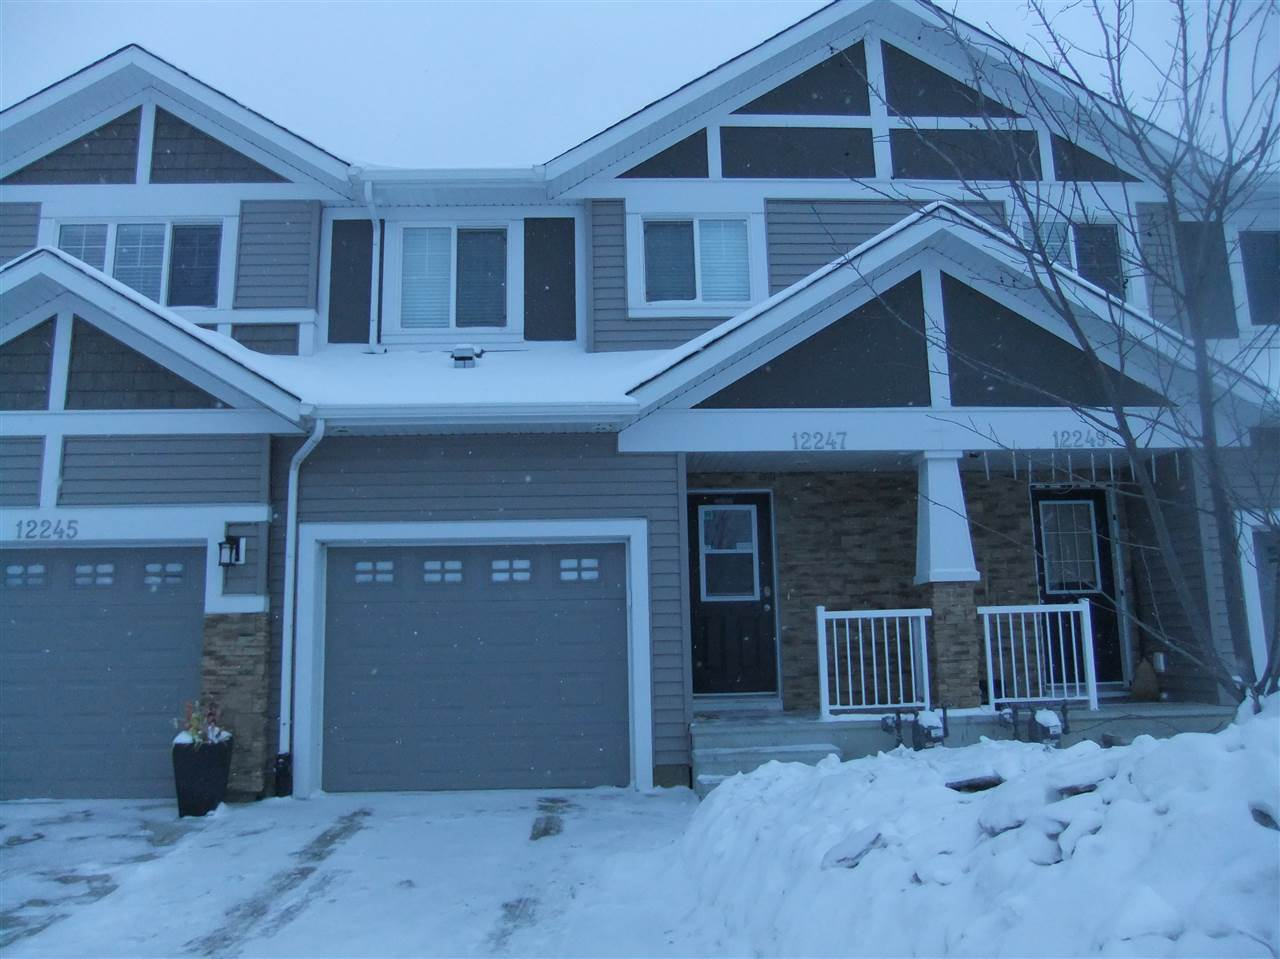 Approx 1237 sq ft 3 bedroom 2 storey in Rapperswill, 4 piece en-suite in master bedroom, hardwood flooring, granite counter top, basement is finished with big rumpus room & 3 piece bath, single attached garage, close to shopping centers, bus route. Price reduced for quick sale.